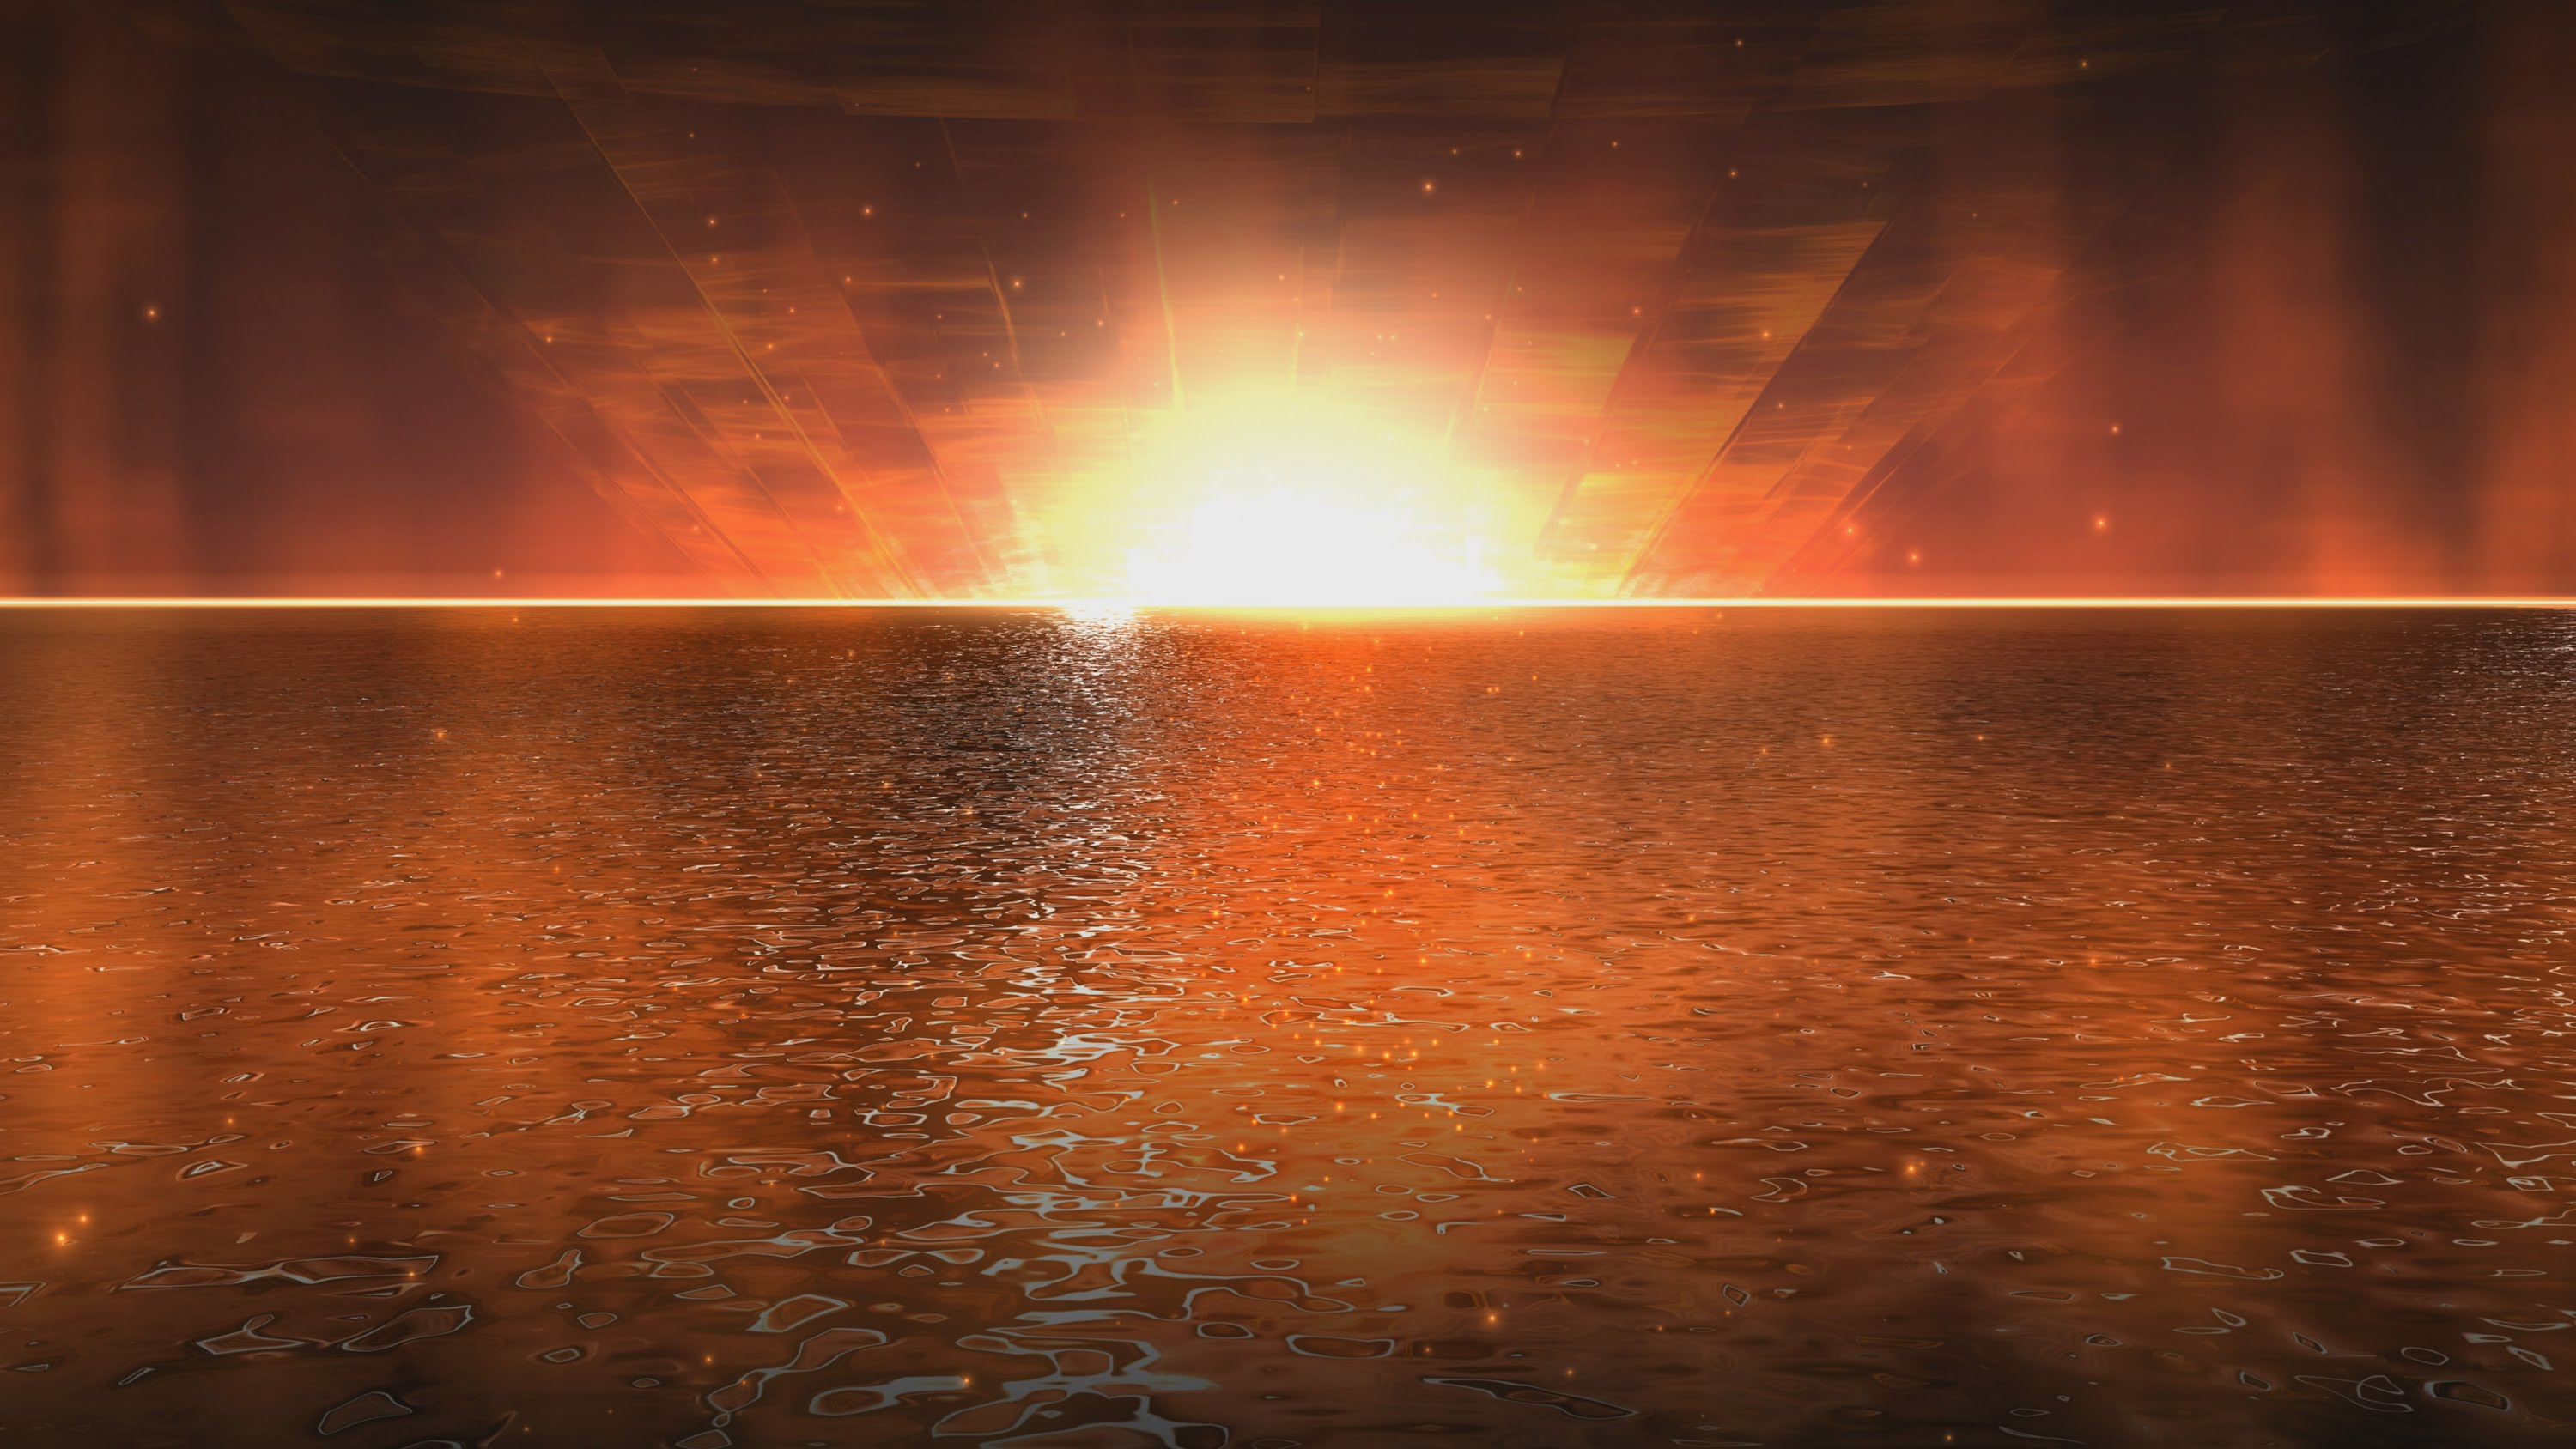 4K Golden Water Sunset Animated Wallpaper 2160p 3000x1688